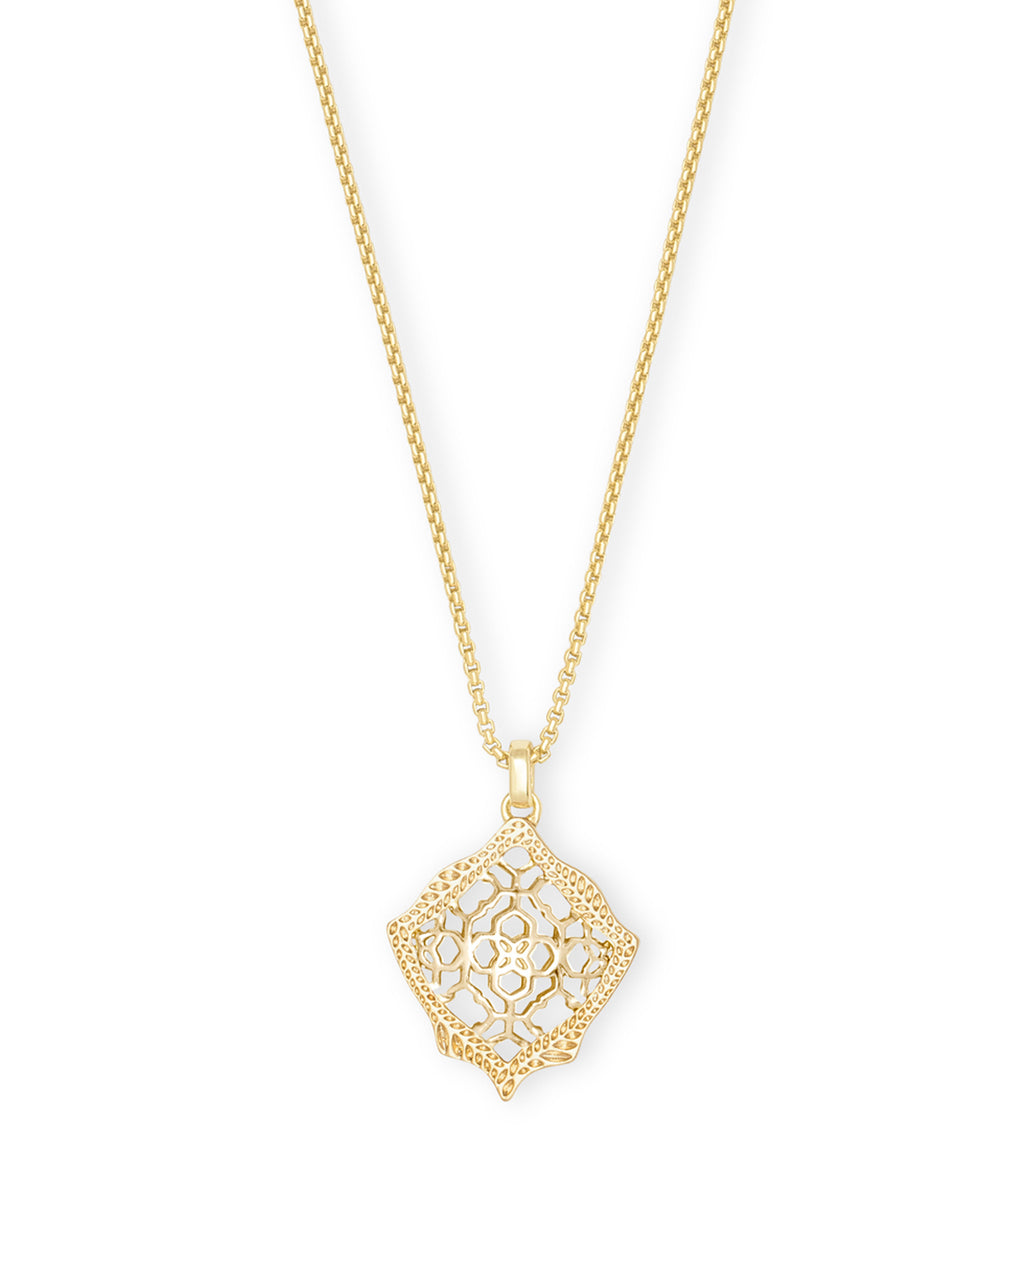 Kacey Long Pendant Necklace in Filigree